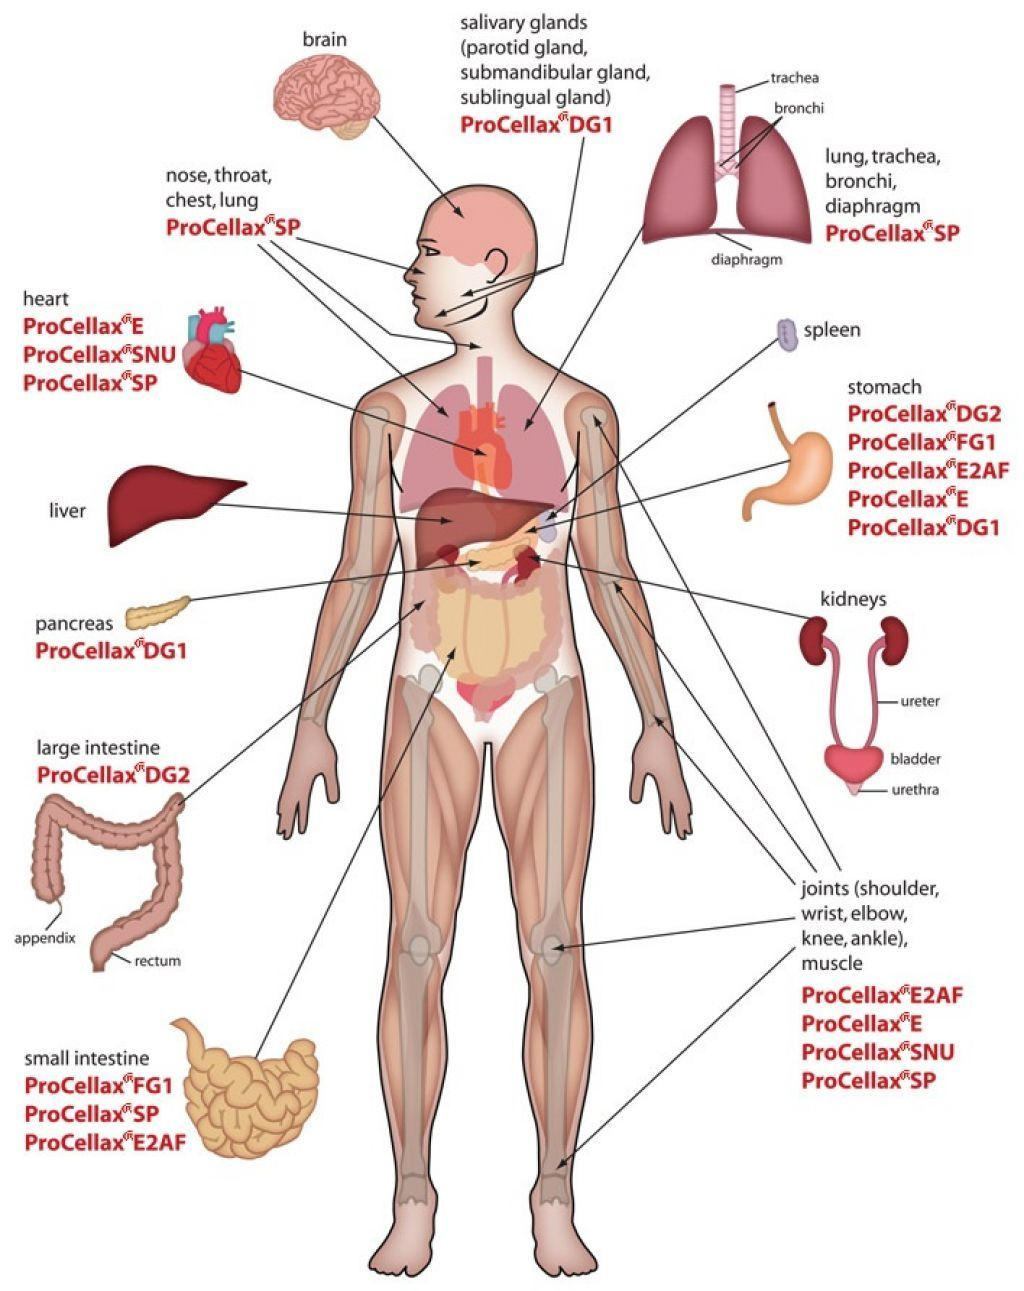 Pictures Of The Human Body And Organs Human Anatomy Pictures